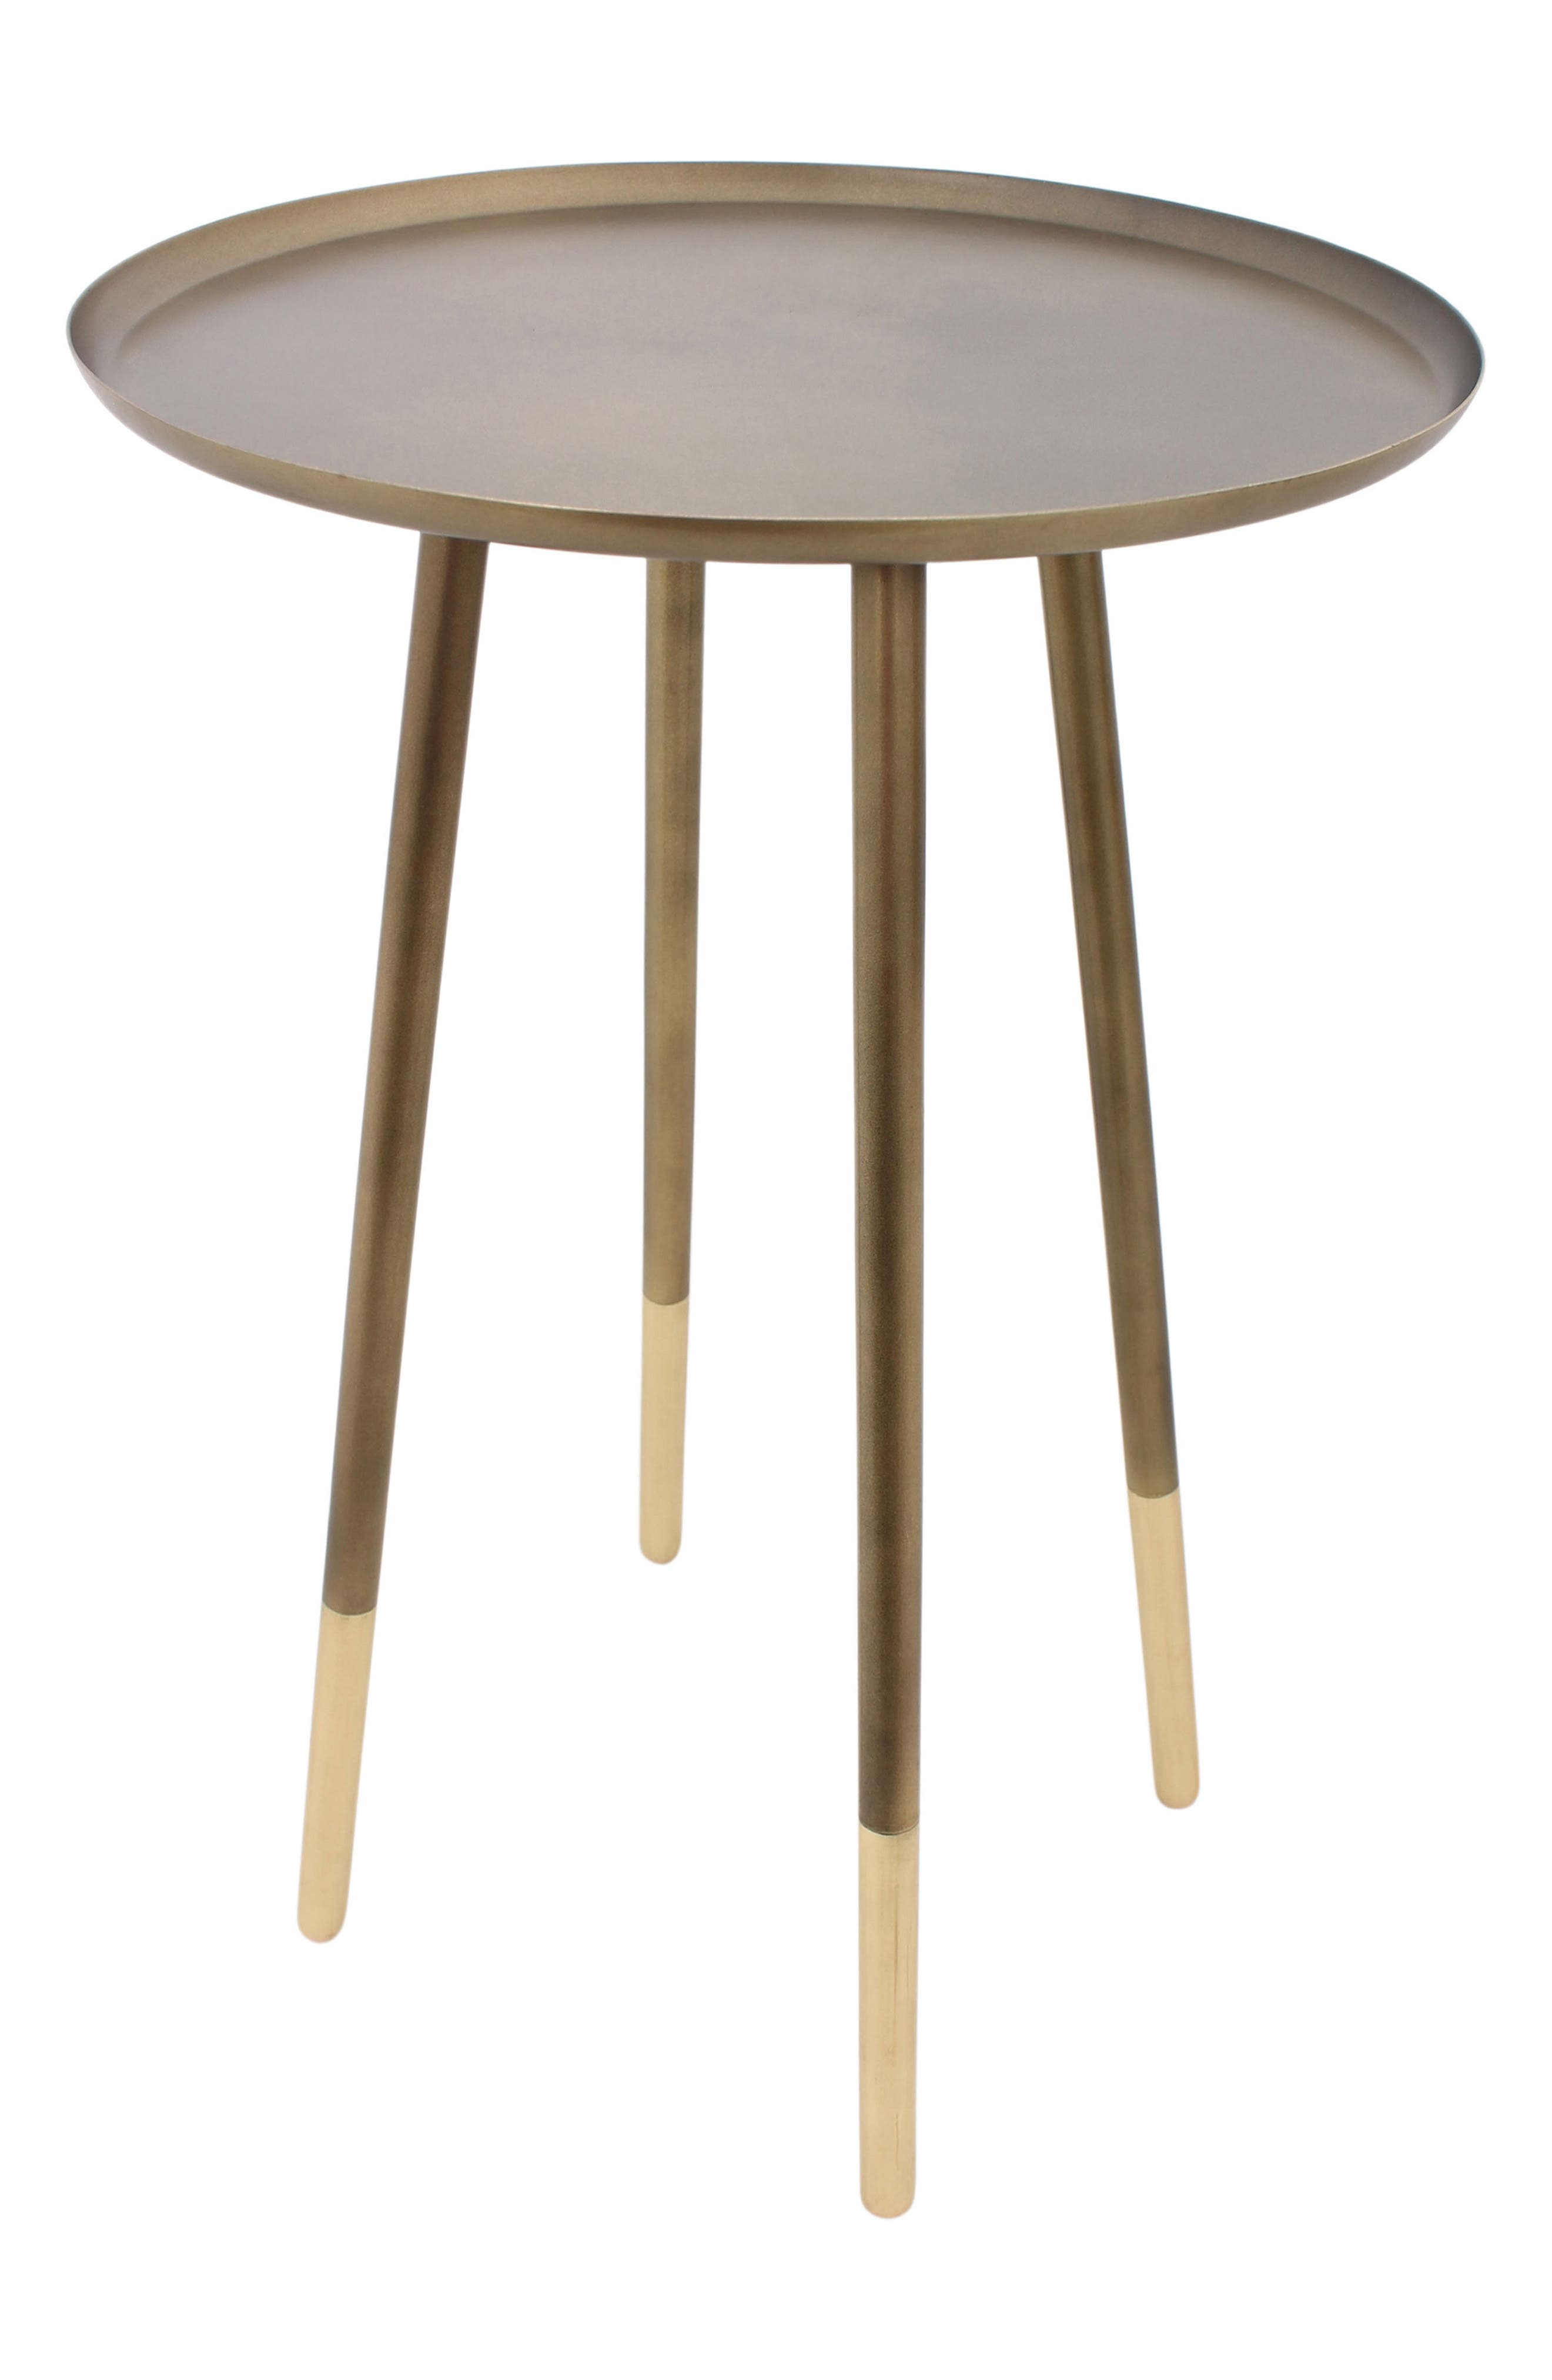 Main Image - Renwil Iron Accent Table